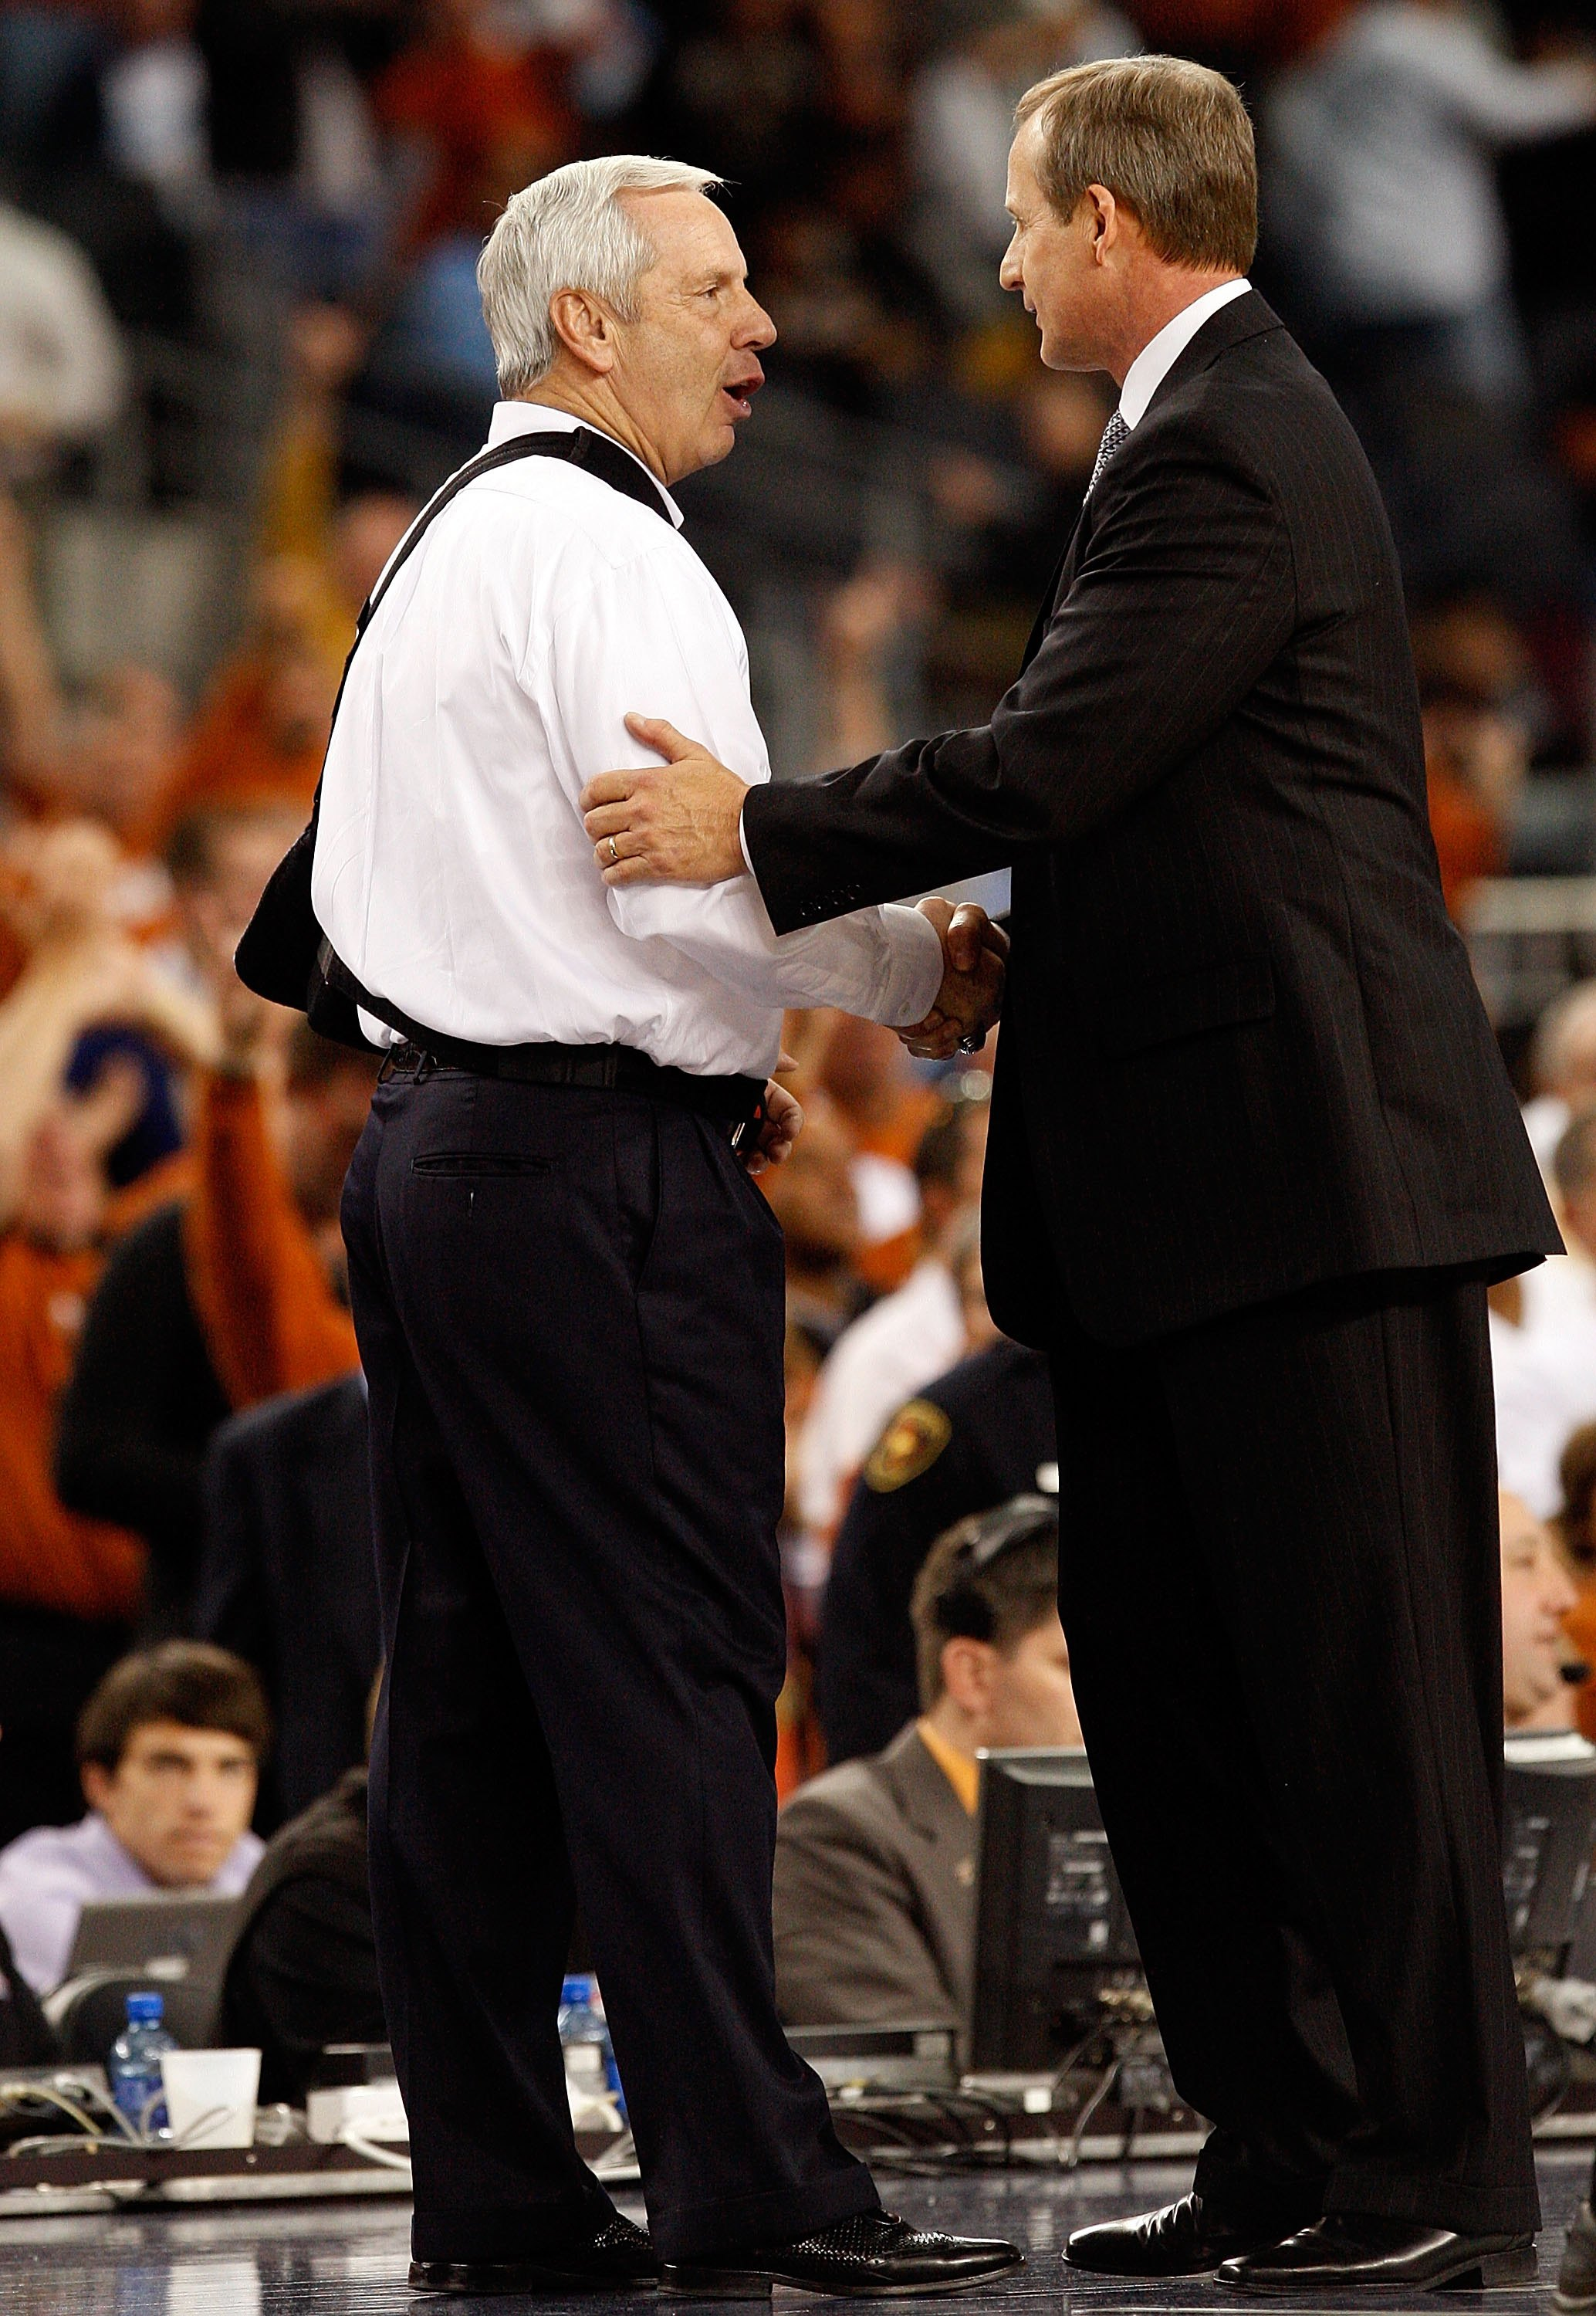 ARLINGTON, TX - DECEMBER 19:  Head coach Roy Williams of the North Carolina Tar Heels greets Rick Barnes of the Texas Longhorns at Cowboys Stadium on December 19, 2009 in Arlington, Texas.  (Photo by Ronald Martinez/Getty Images)